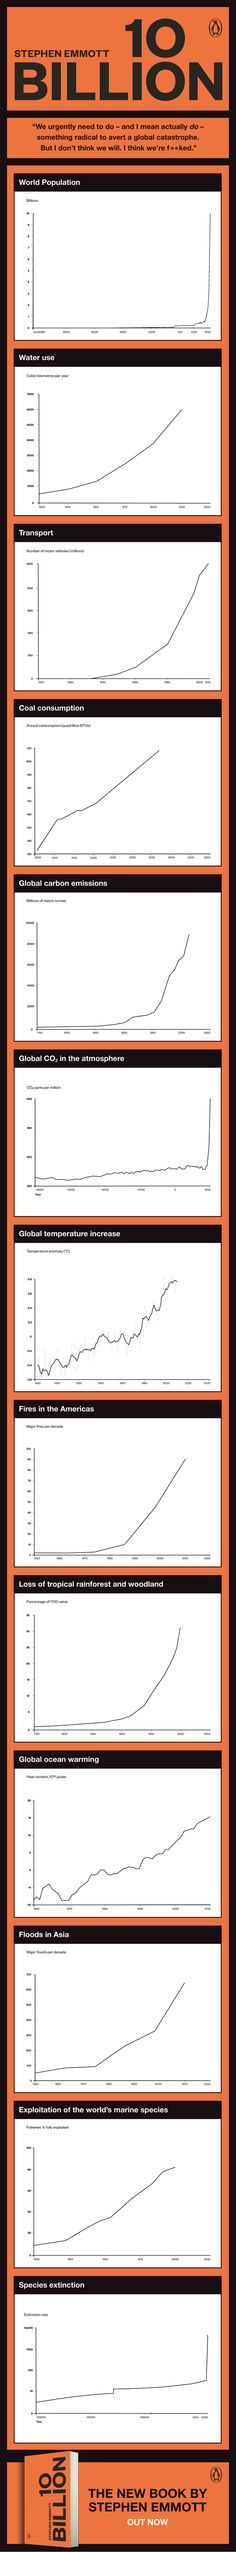 I think the world might be screwed...these 13 graphs from Stephen Emmott's book suggests that the world is on a collision course to implode due to our exploitation of natural resources and the planet we live on